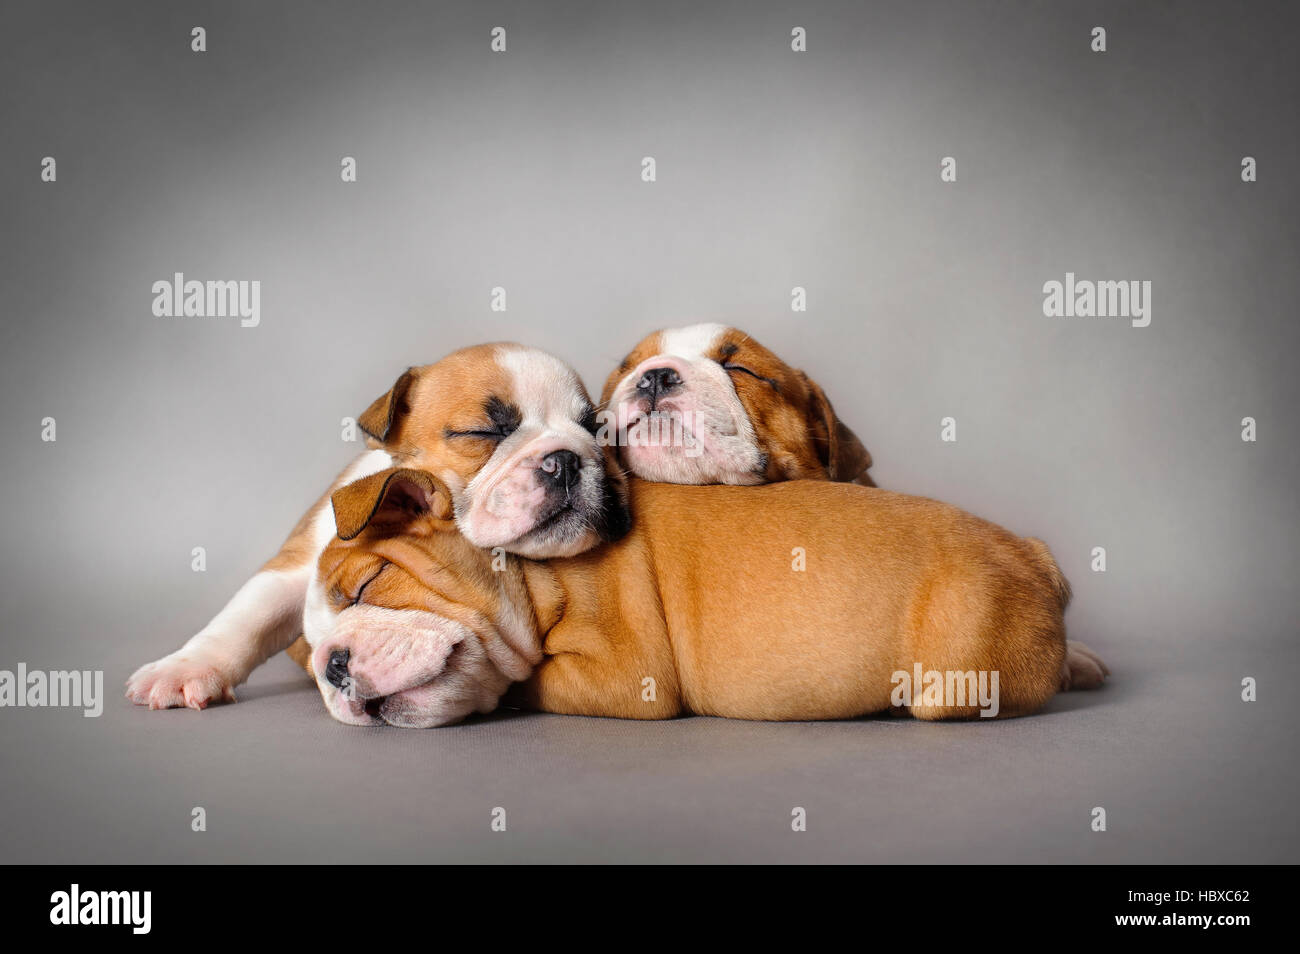 Sleeping English bulldog puppies on grey background - Stock Image